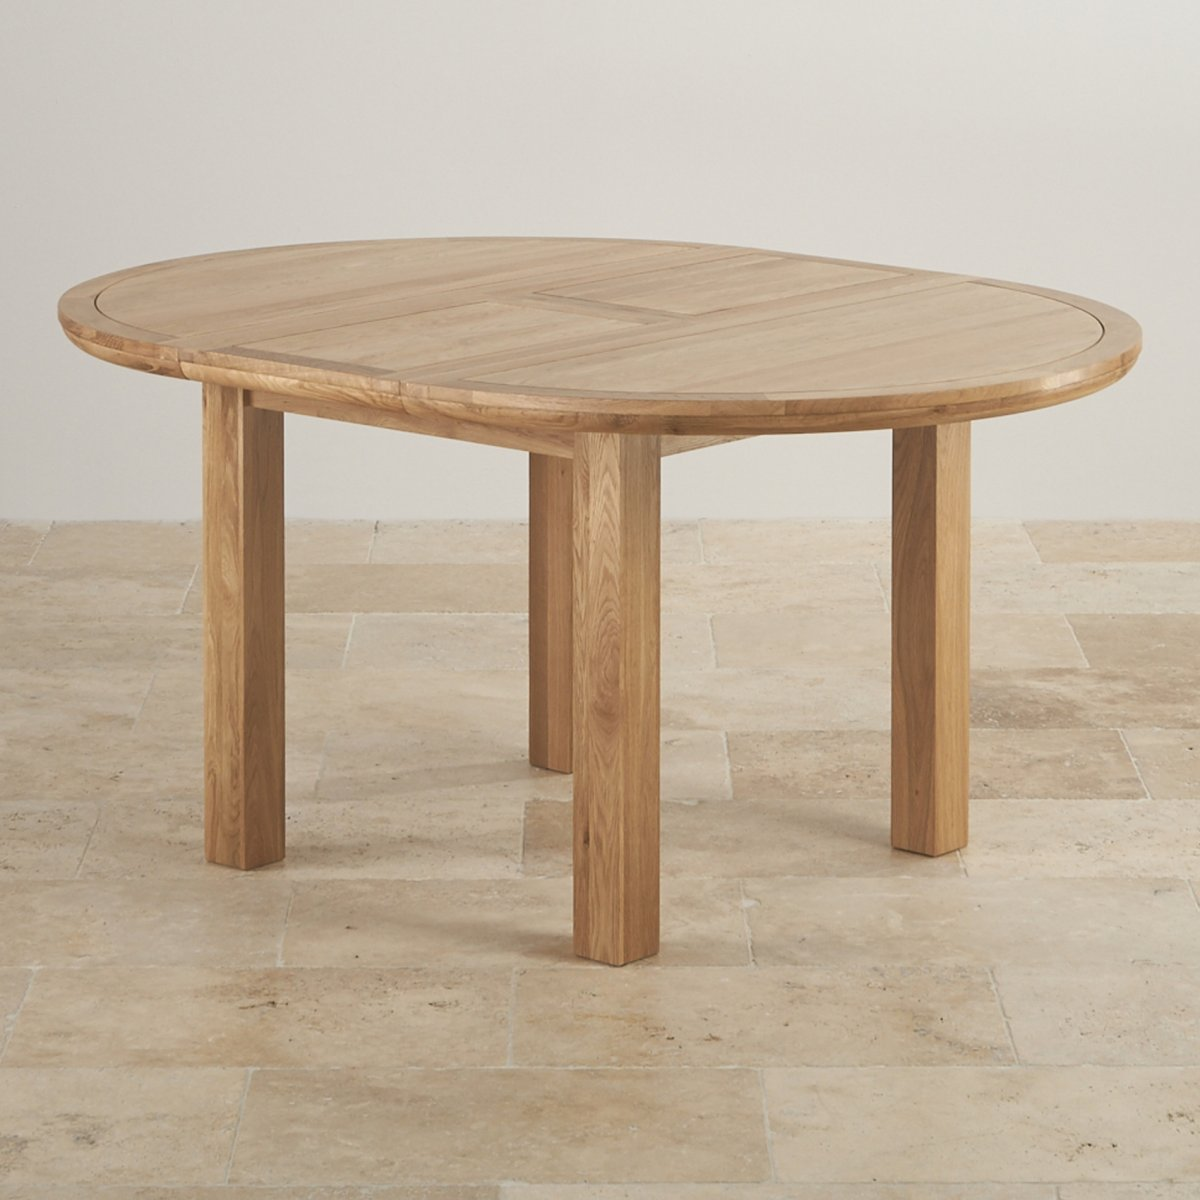 Knightsbridge 4ft extending round dining table in natural oak - Round extending dining table ...